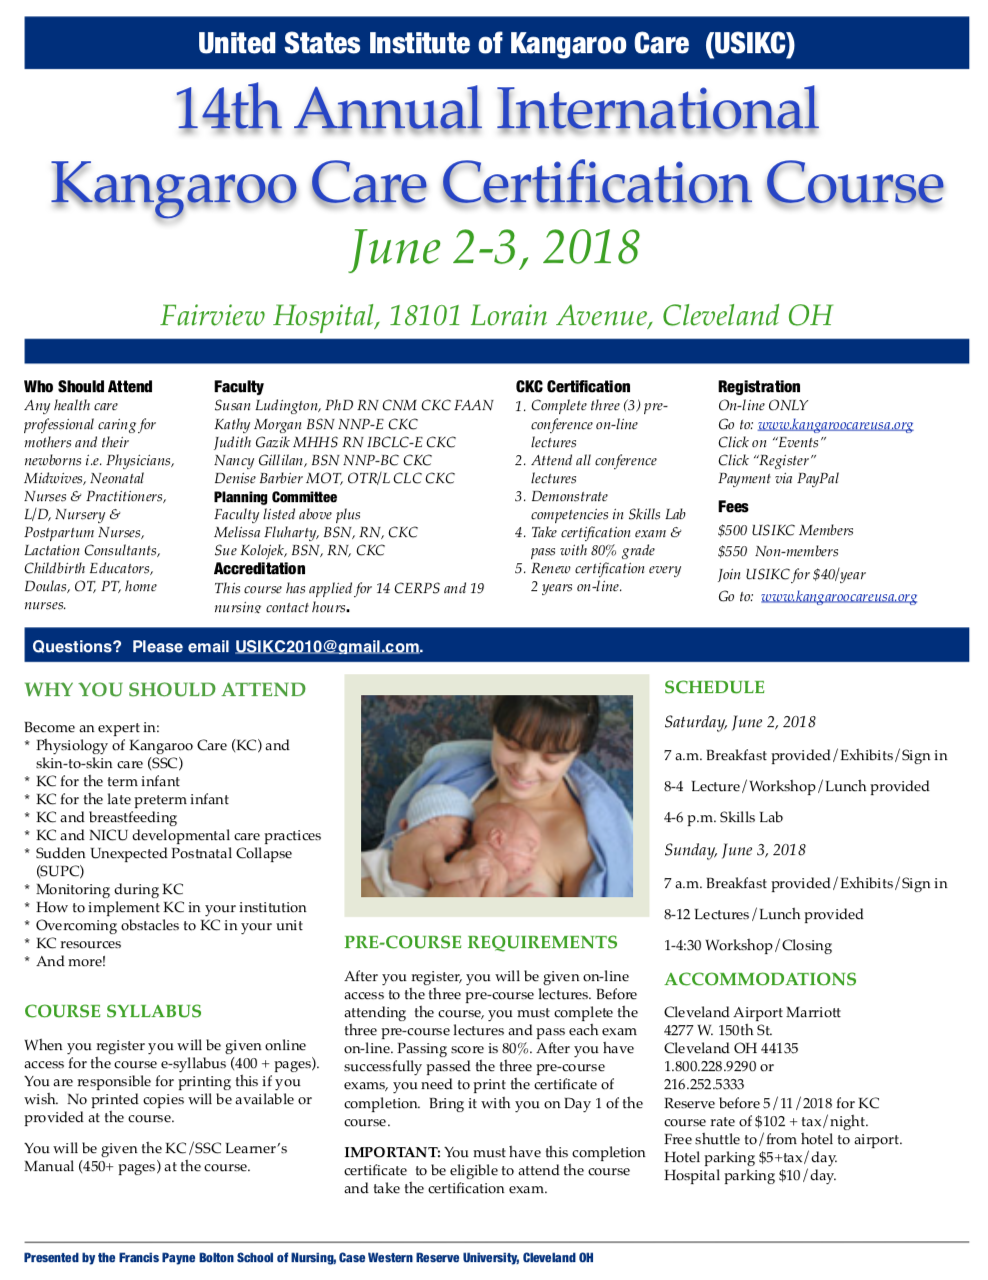 14th Annual International Kangaroo Care Certification Course